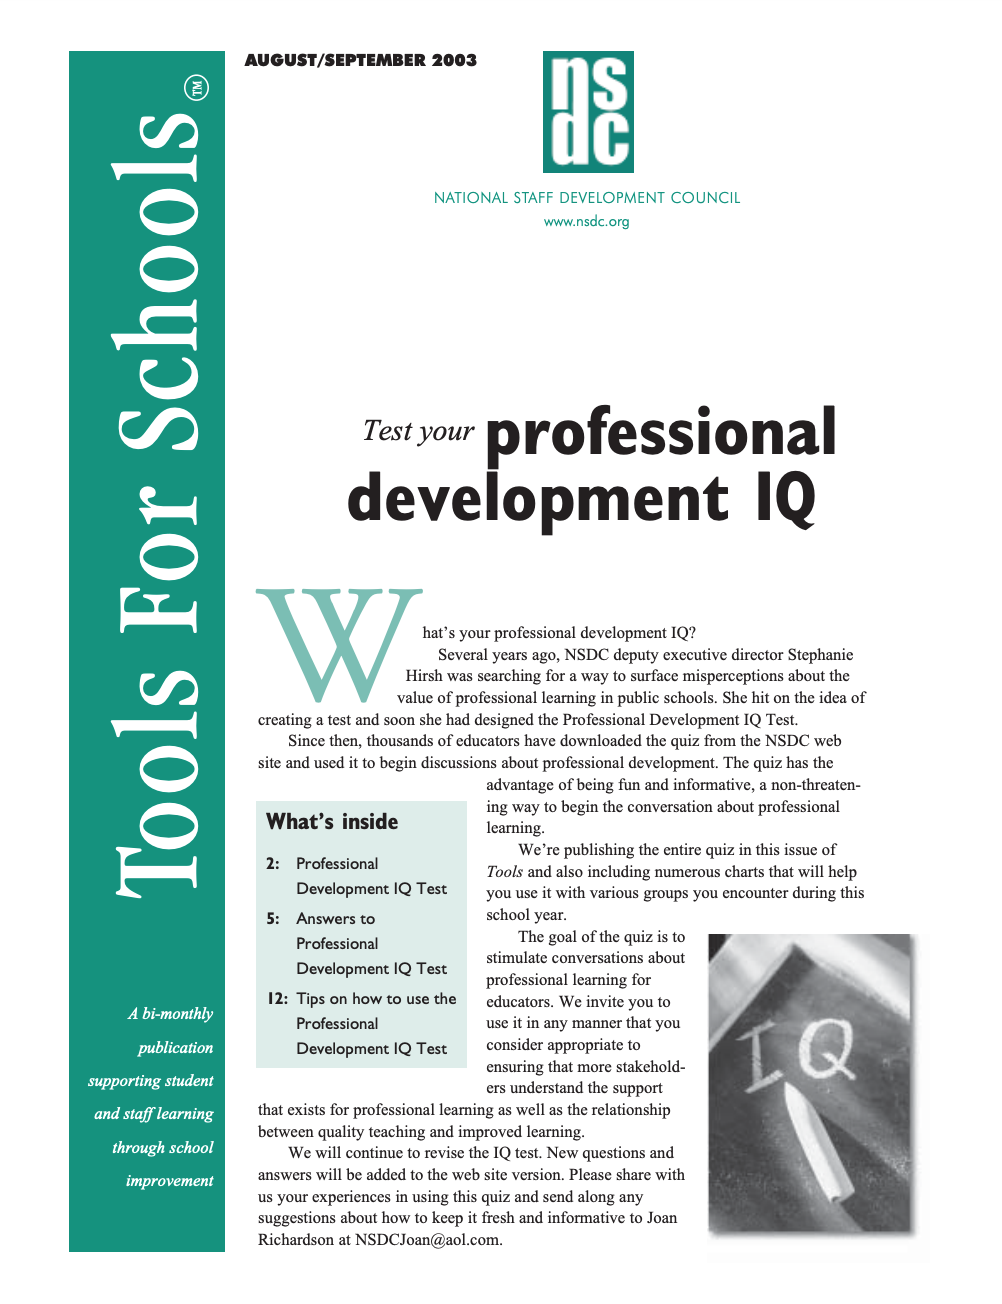 tools-for-schools-august-september-2003-vol-7-no-1